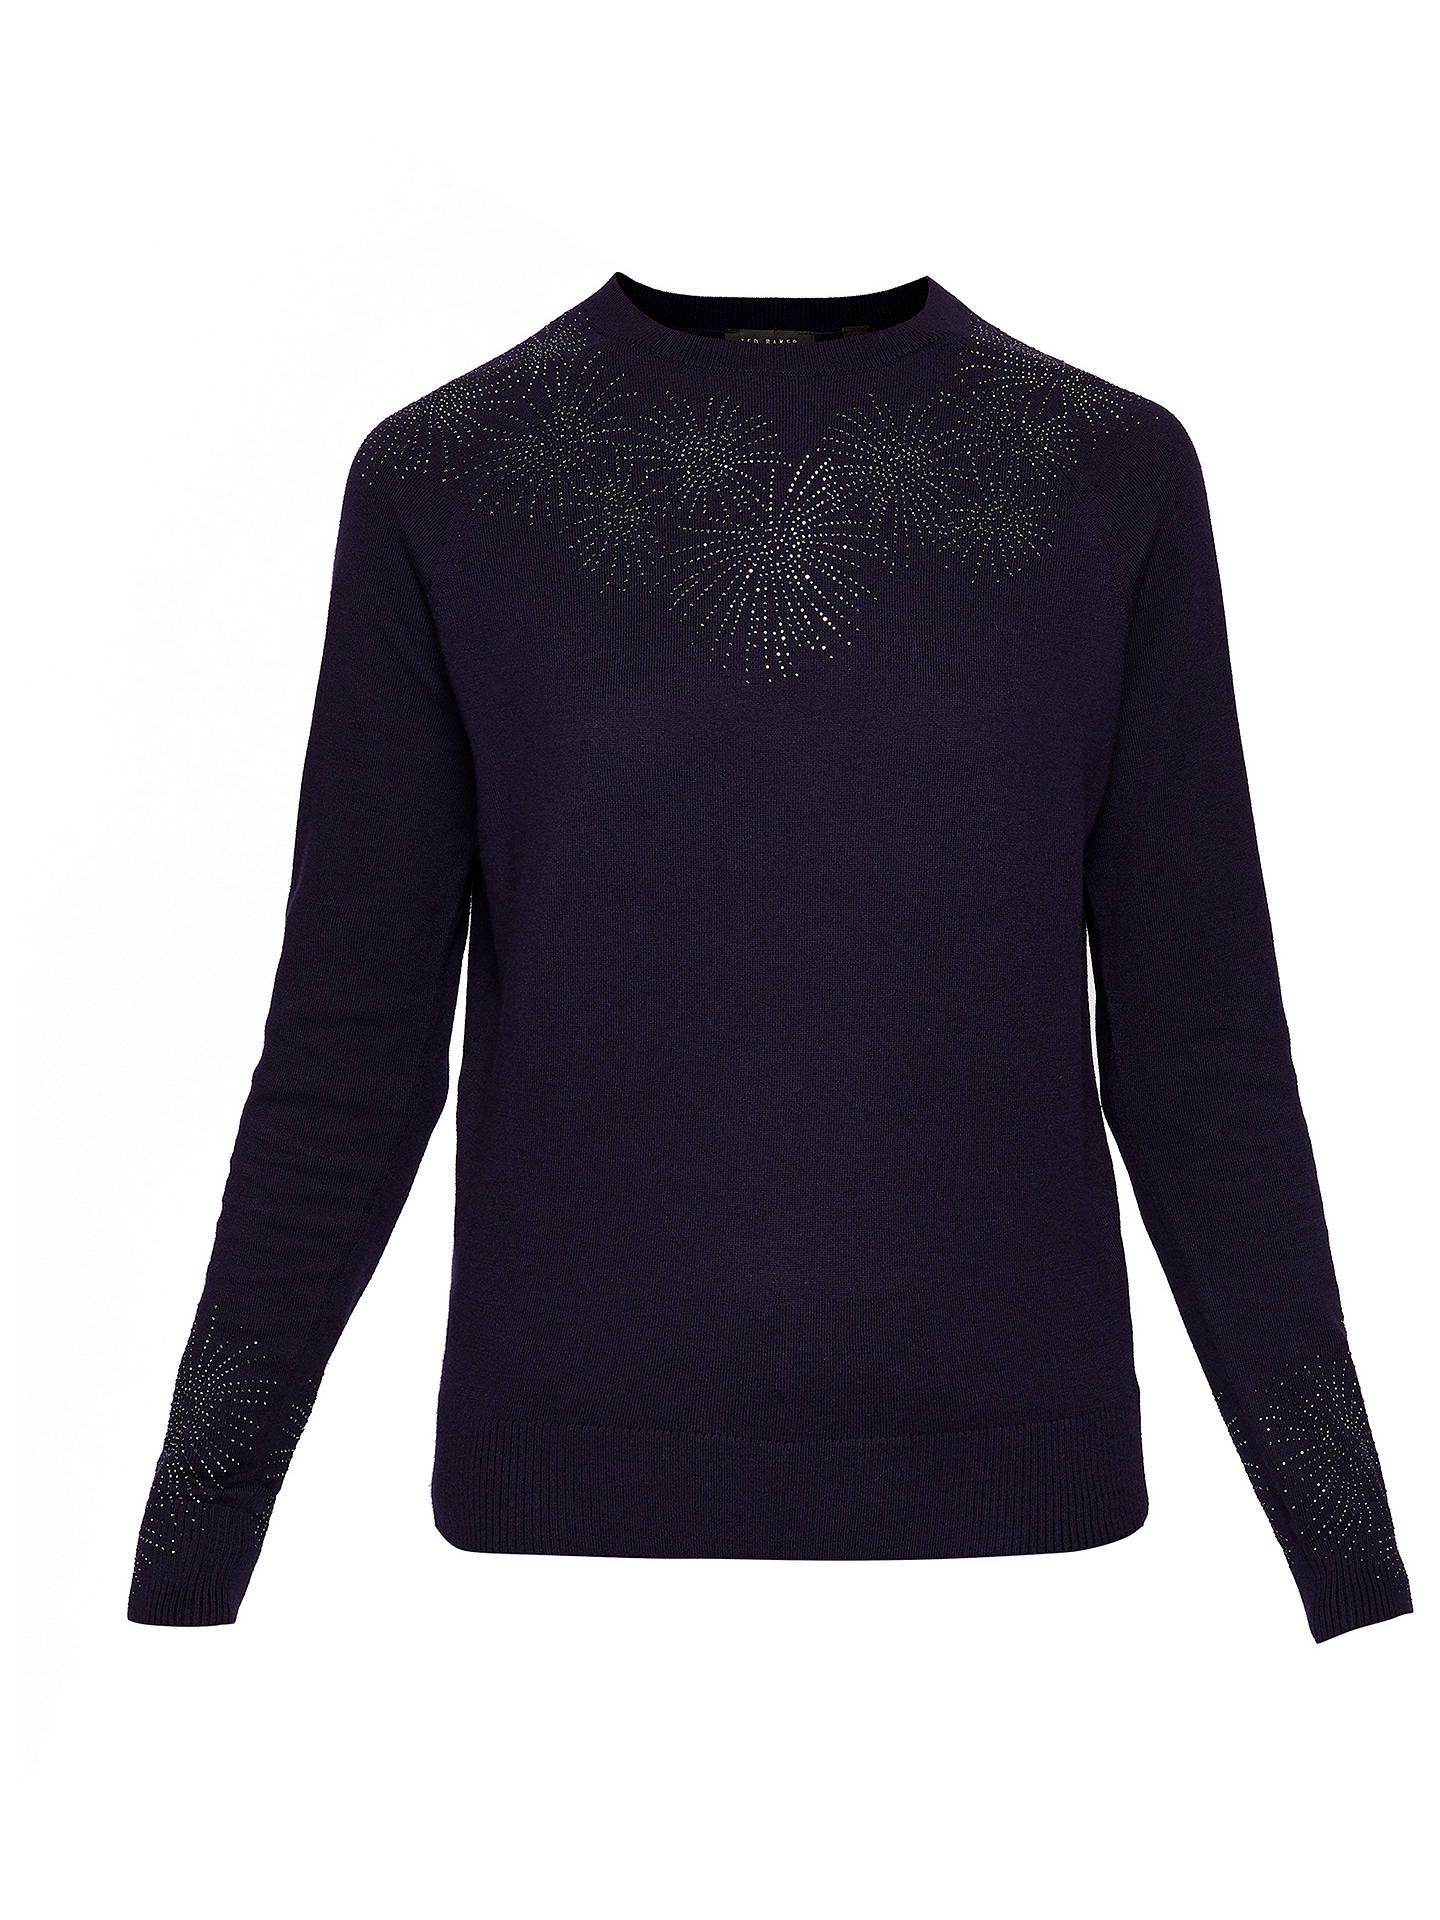 BuyTed Baker Amrylis Stardust Jumper, Dark Blue, 0 Online at johnlewis.com